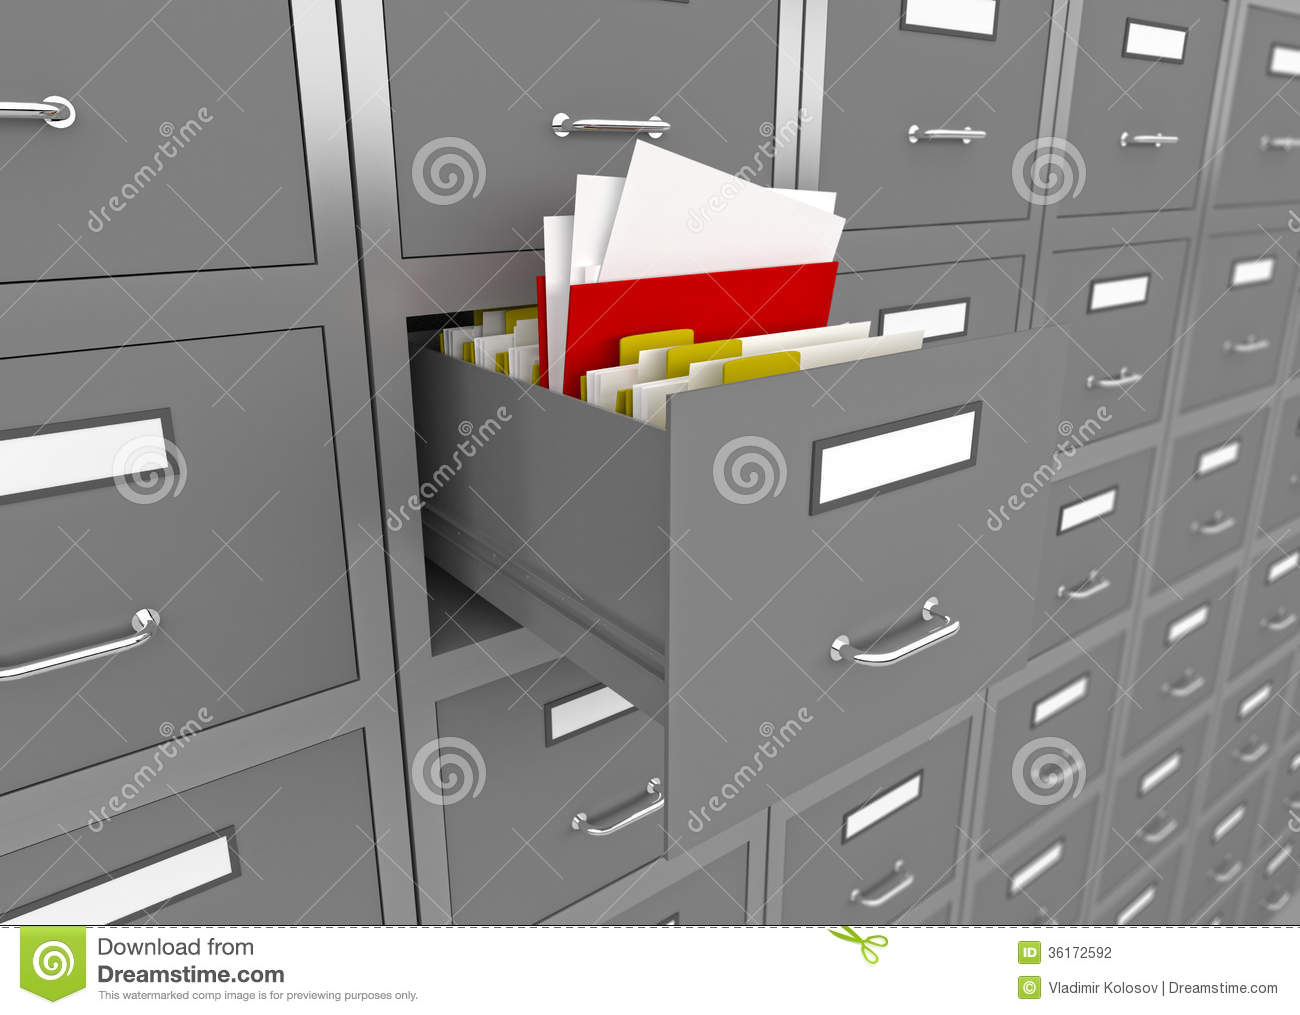 File Cabinet With An Open Drawer. Stock Illustration - Image: 36172592